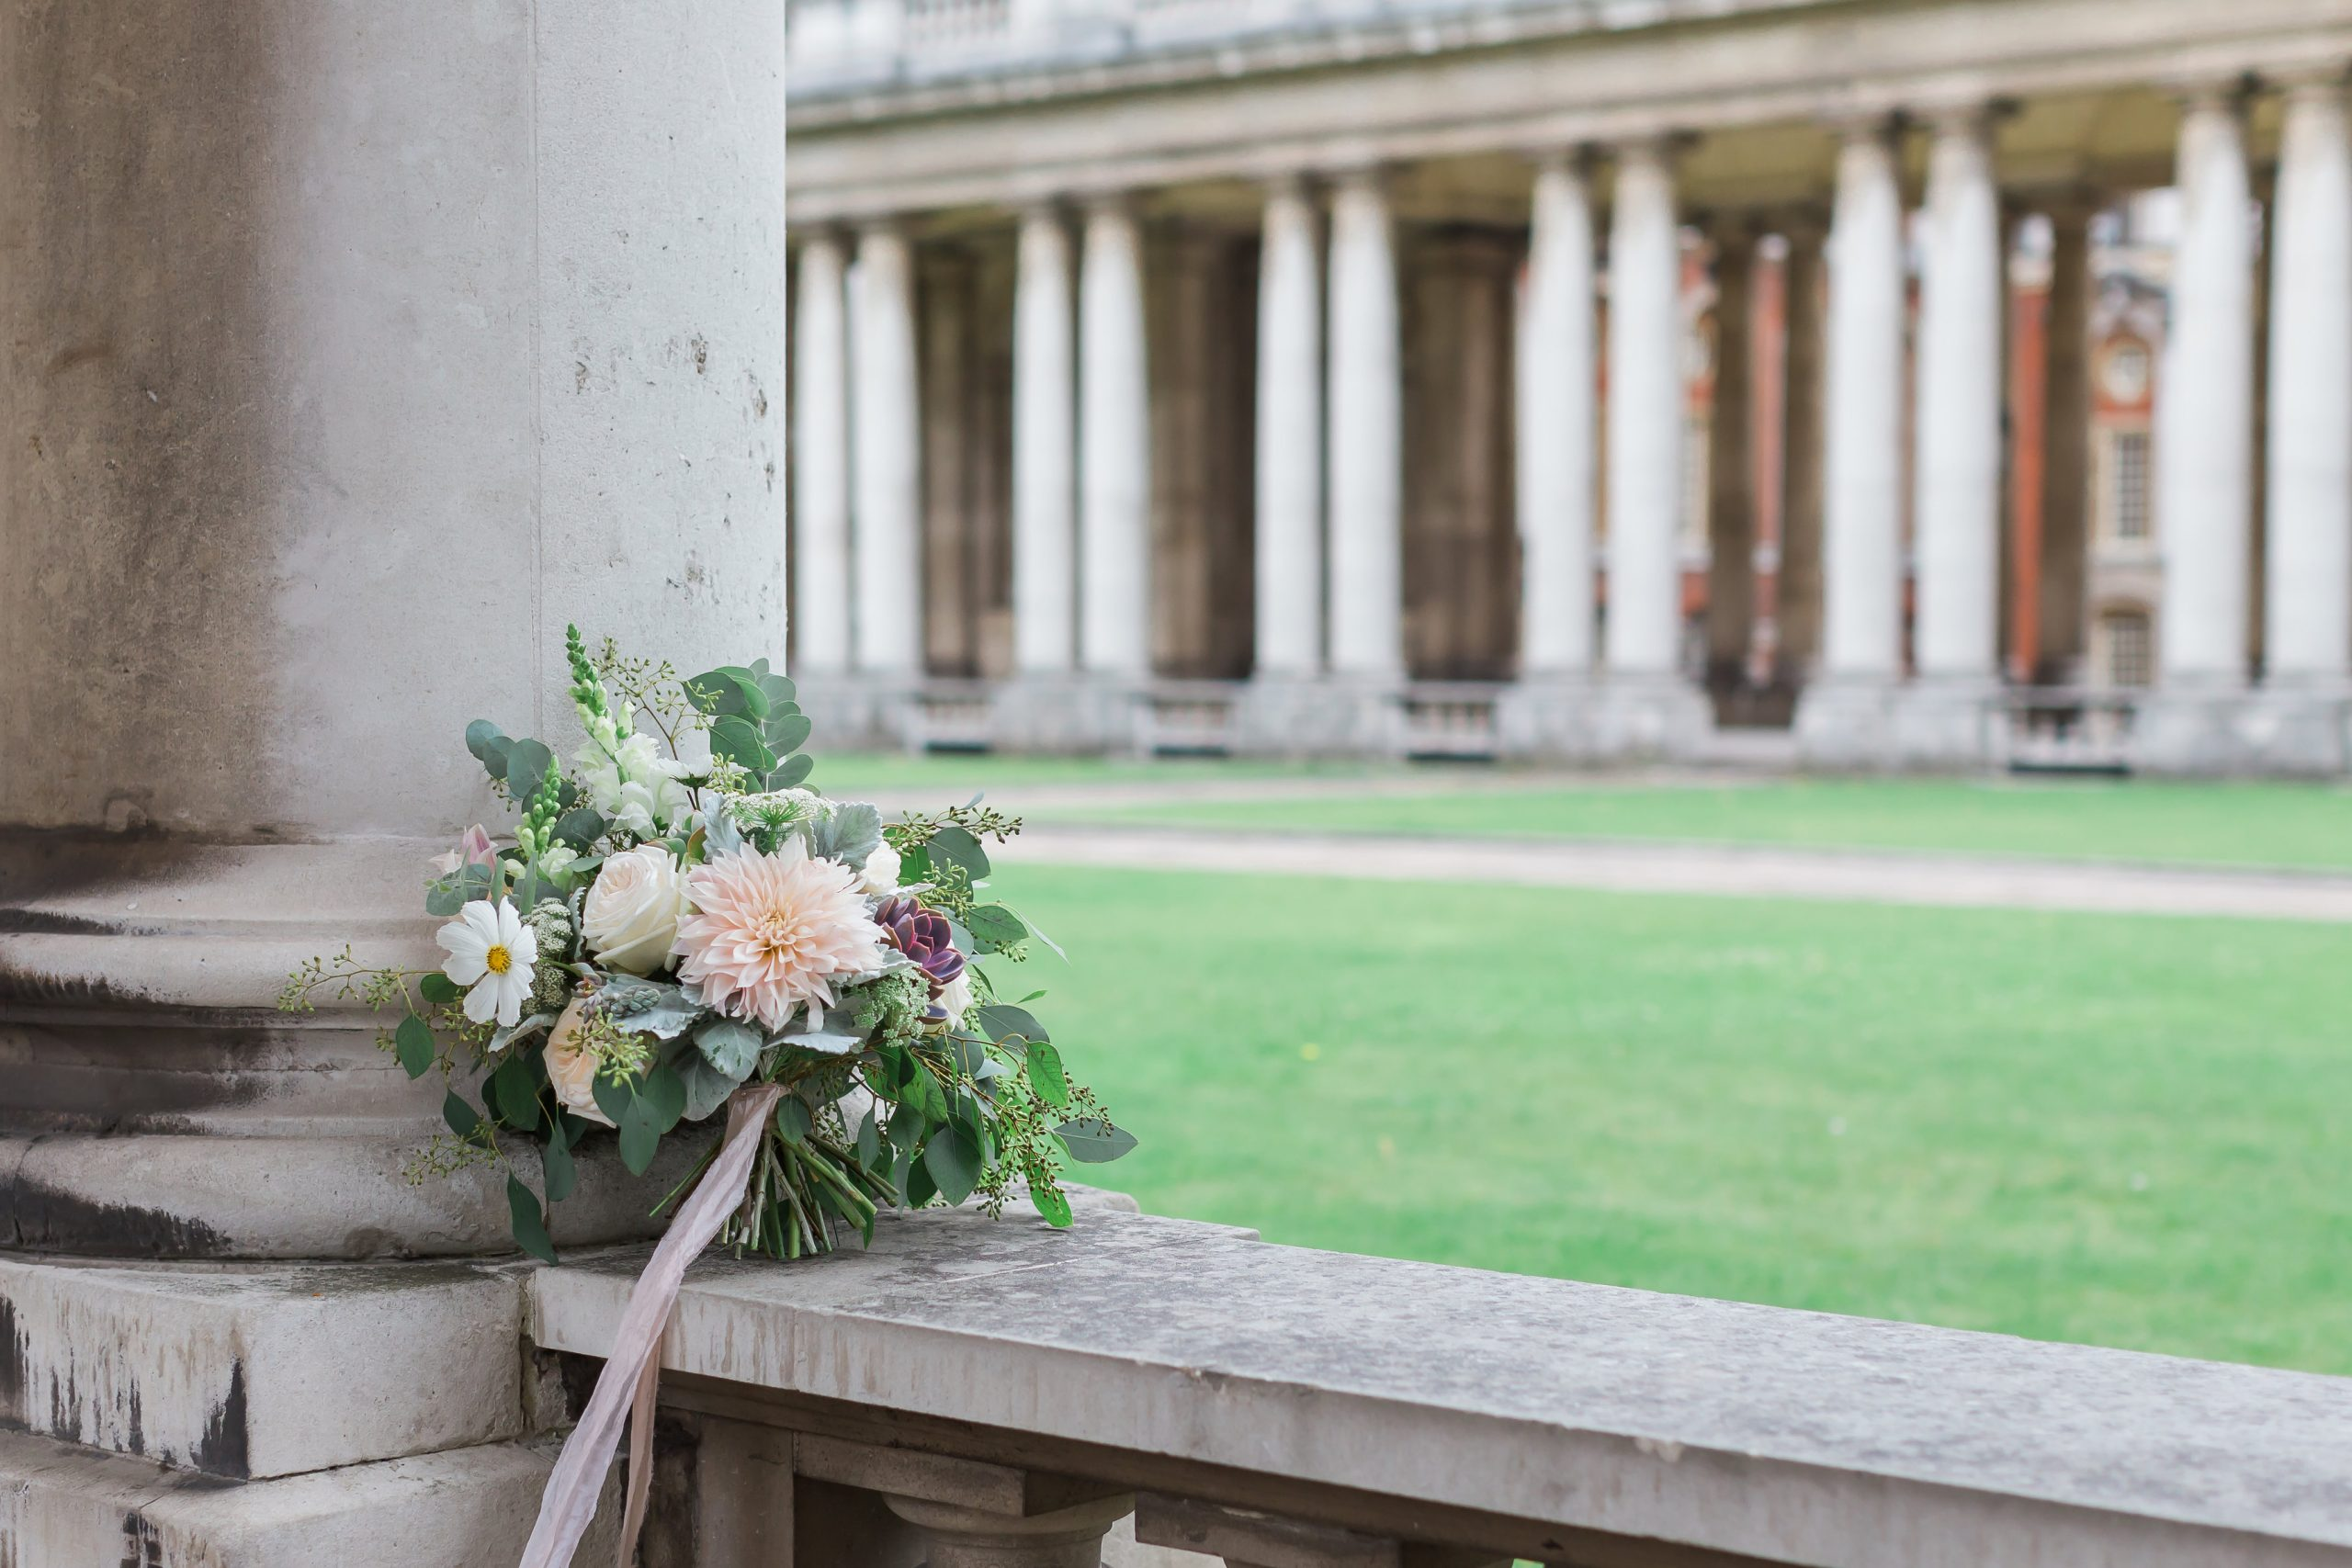 image of a bridal bouquet sitting on a wall with stone columns behind